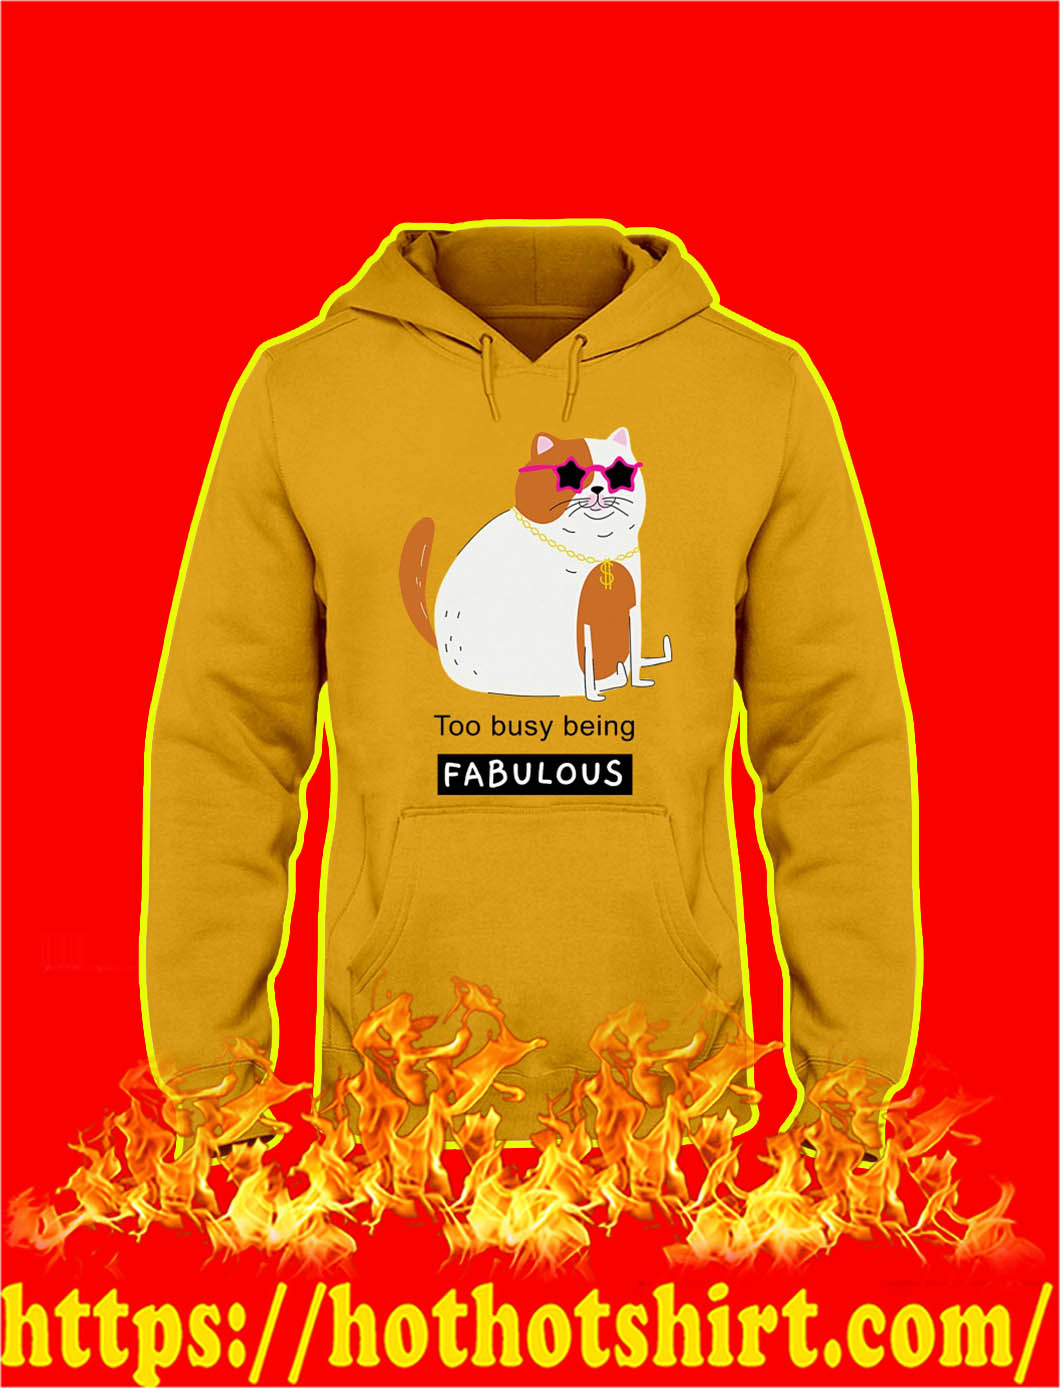 Too Busy Being Fabulous Down Syndrome hoodie